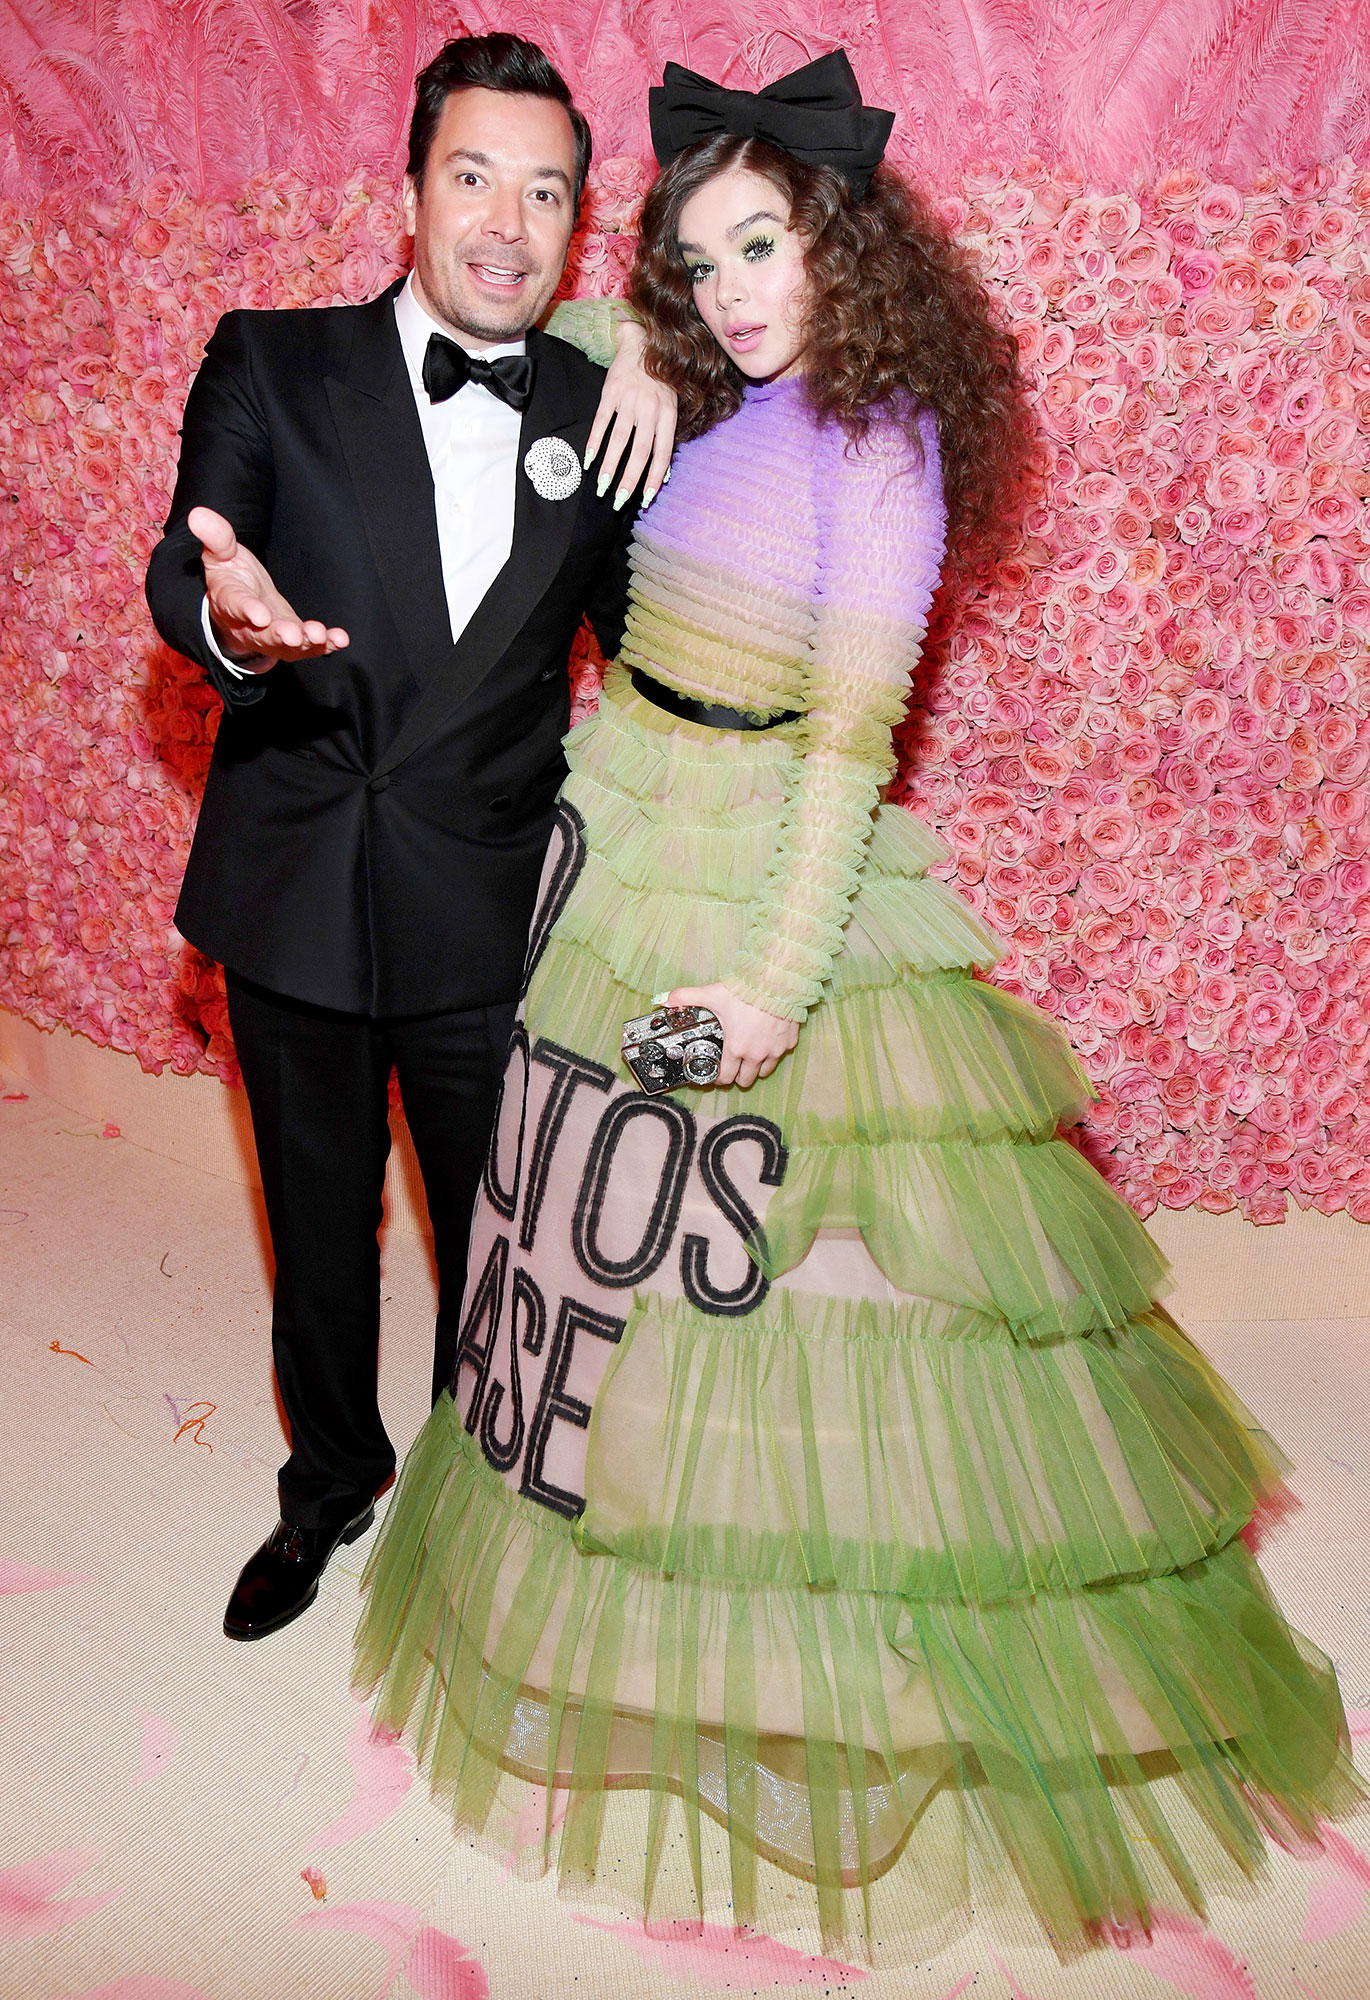 Met Gala 2019 What You Didnt See Jimmy Fallon Hailee Steinfeld - Jimmy Fallon and Hailee Steinfeld chatted inside the museum.